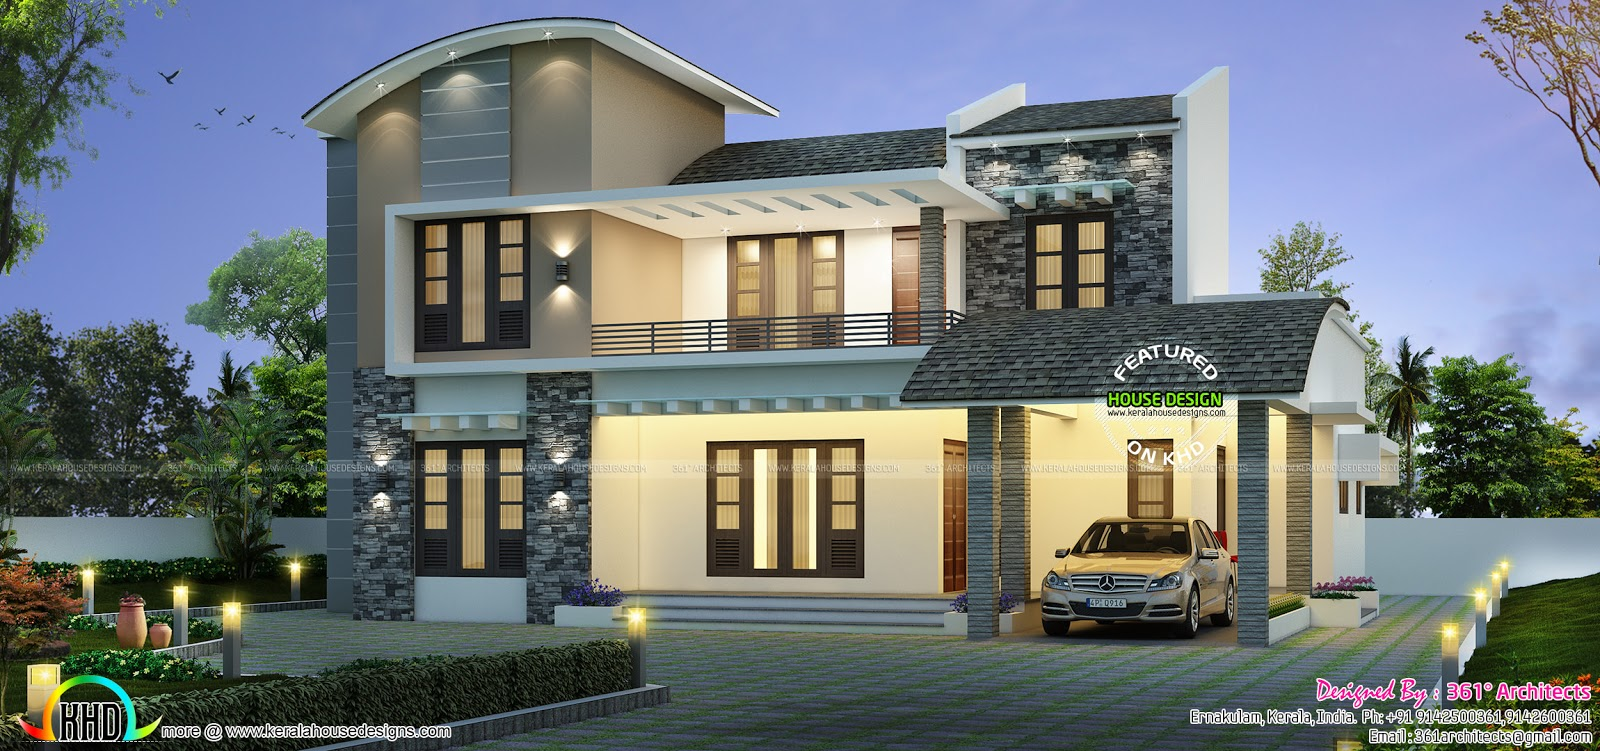 2768 Sqft Curved Roof Style 4 Bed Room House Kerala Home